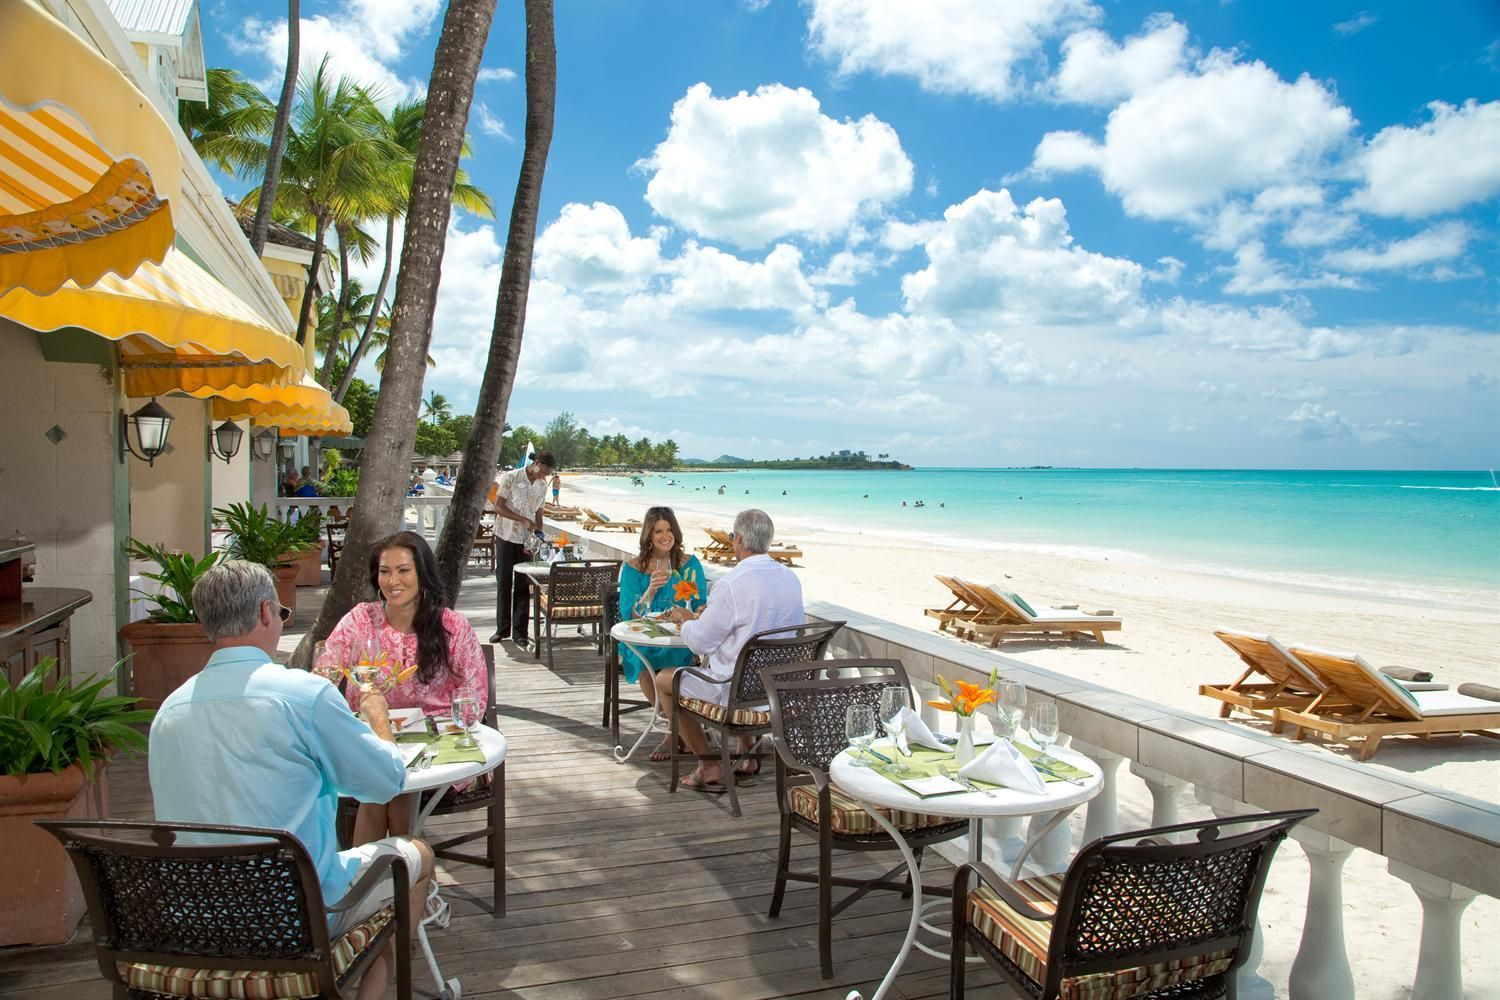 Bayside Restaurant All inclusive beach resorts